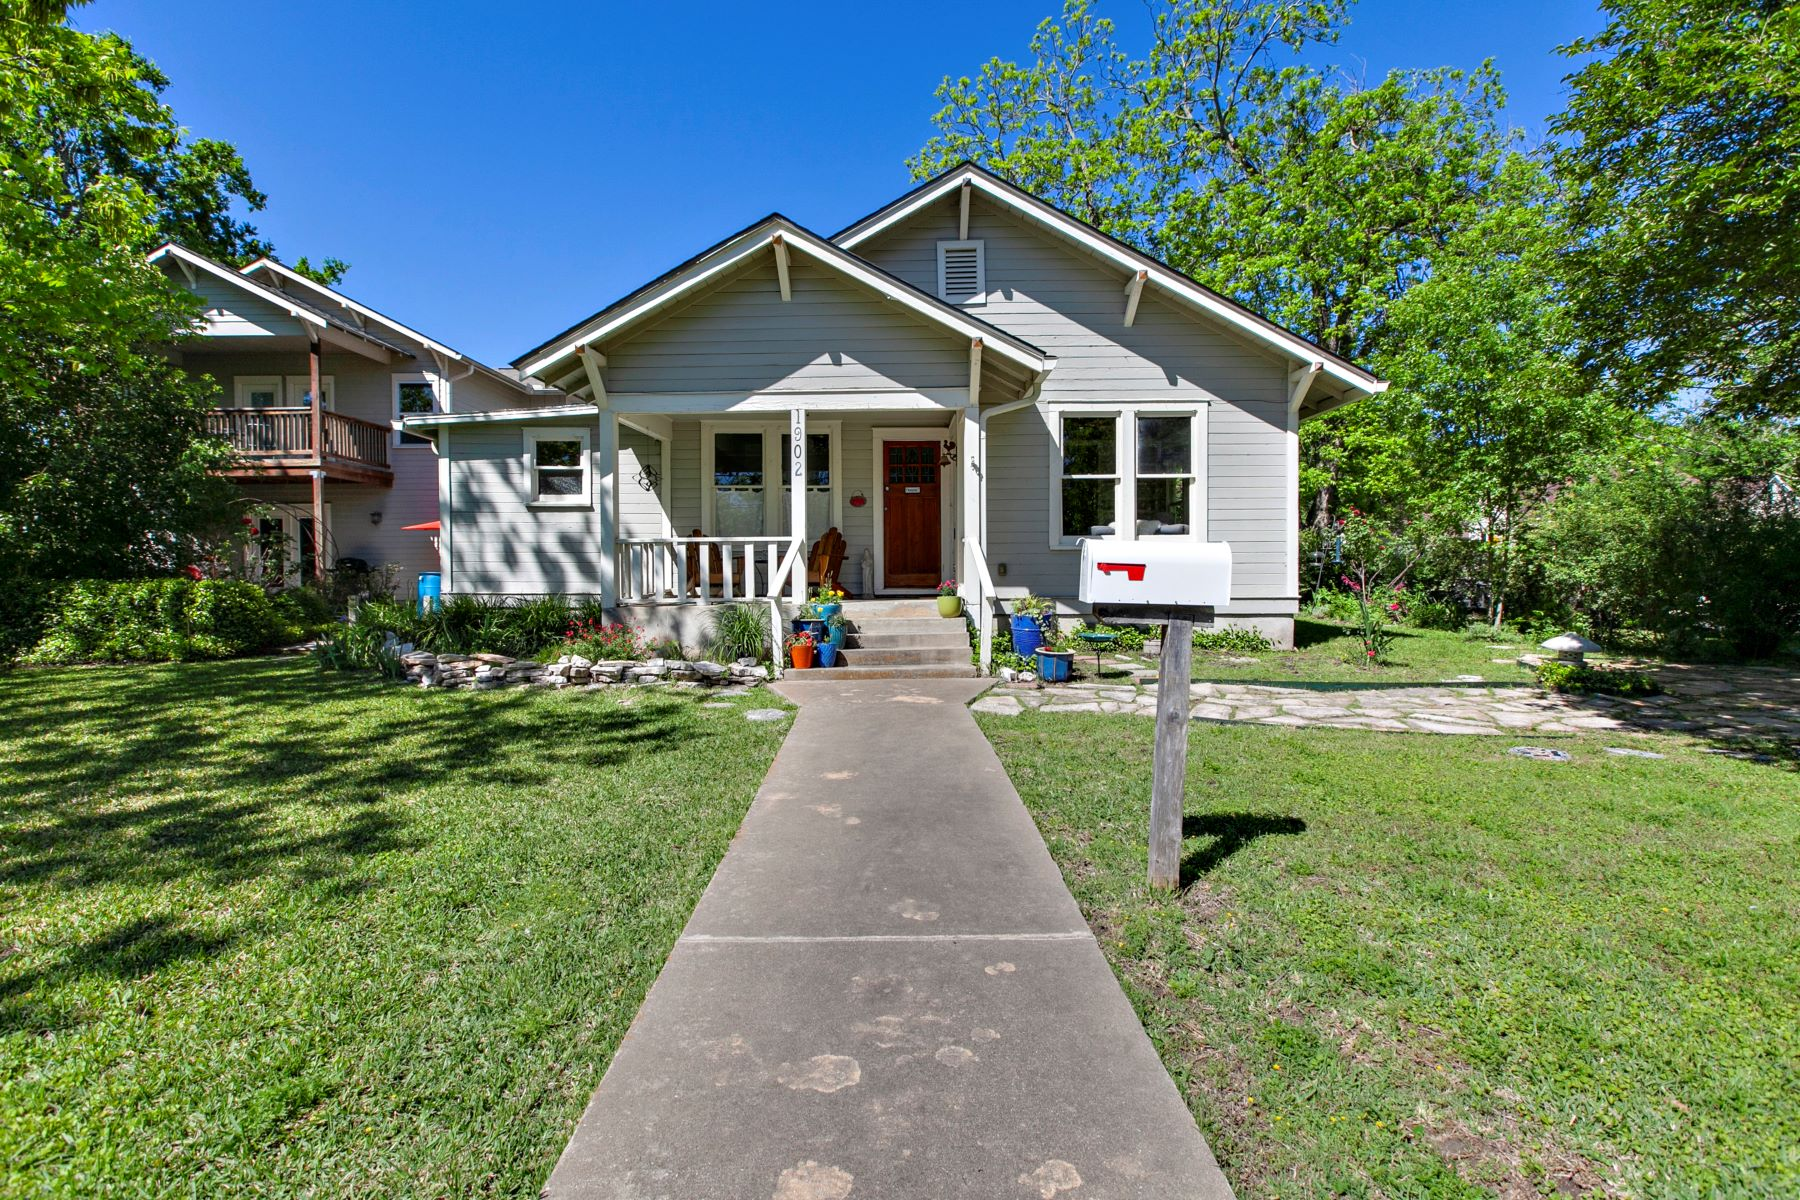 Single Family Homes for Sale at 1902 South Church Street, Georgetown, TX 78626 1902 South Church Street Georgetown, Texas 78626 United States